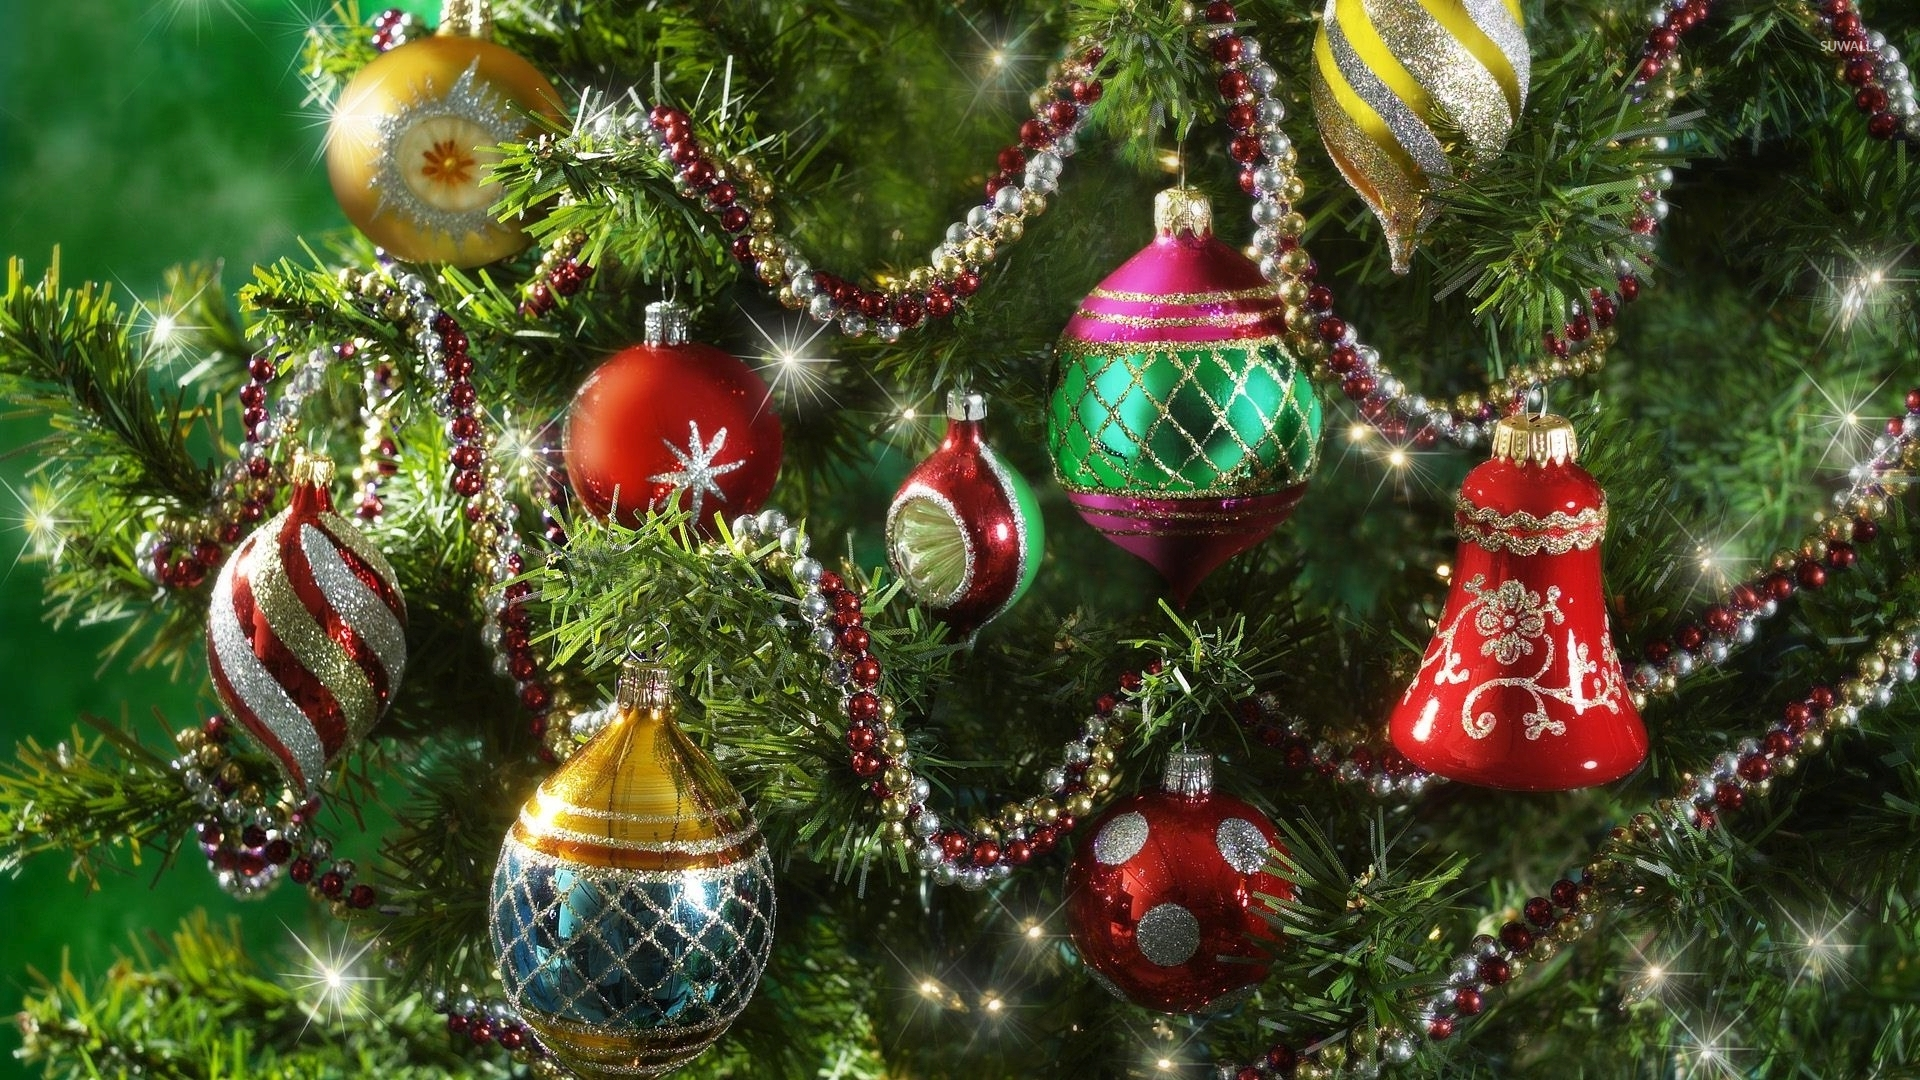 Christmas Ornaments On Tree Full Hd Wallpaper And HD Wallpapers Download Free Images Wallpaper [1000image.com]